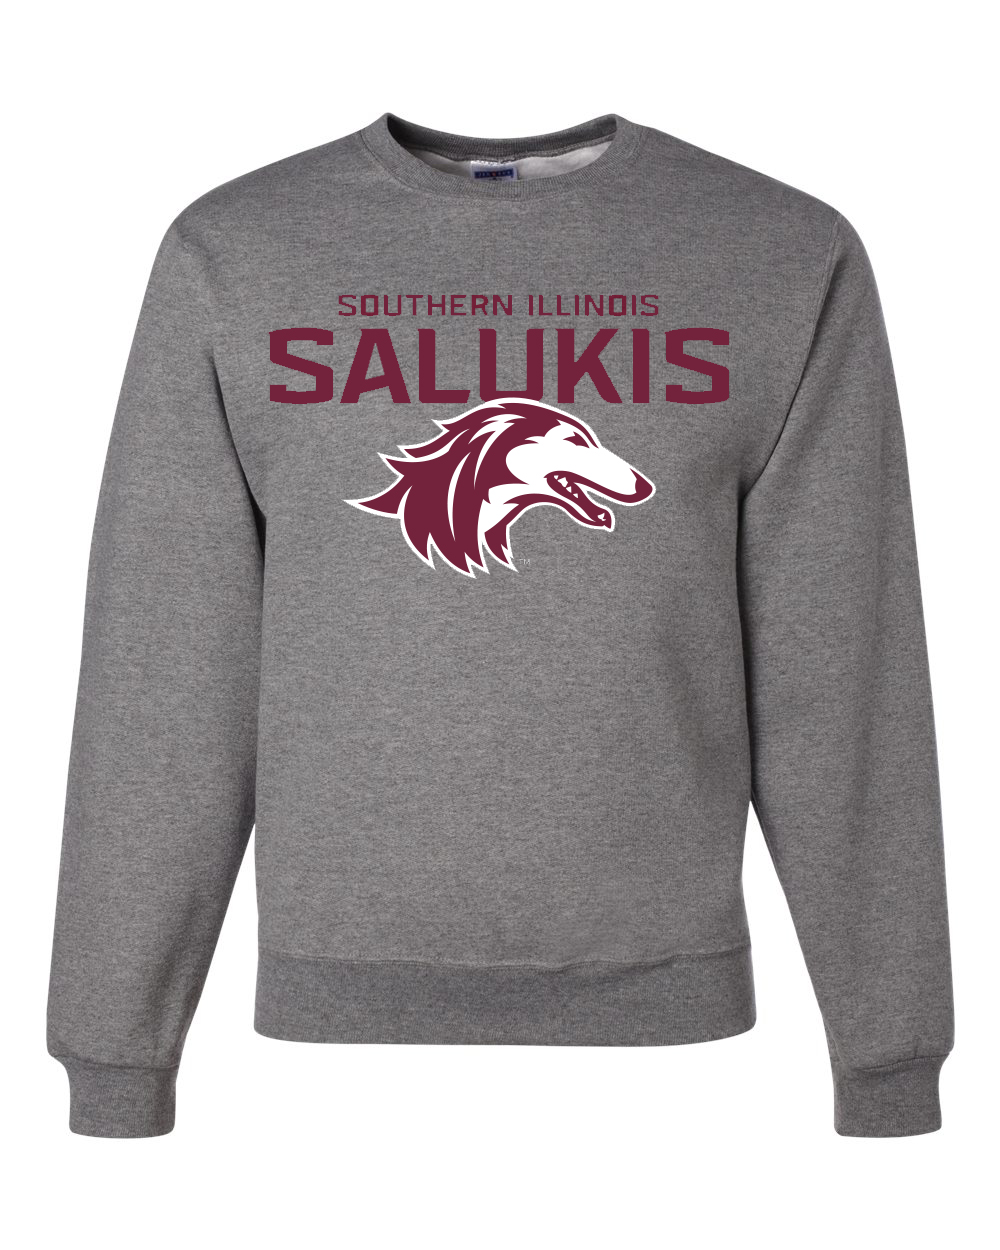 Image for the NEW 2019 ATHLETIC LOGO SOUTHERN ILLINOIS SALUKIS CREW product